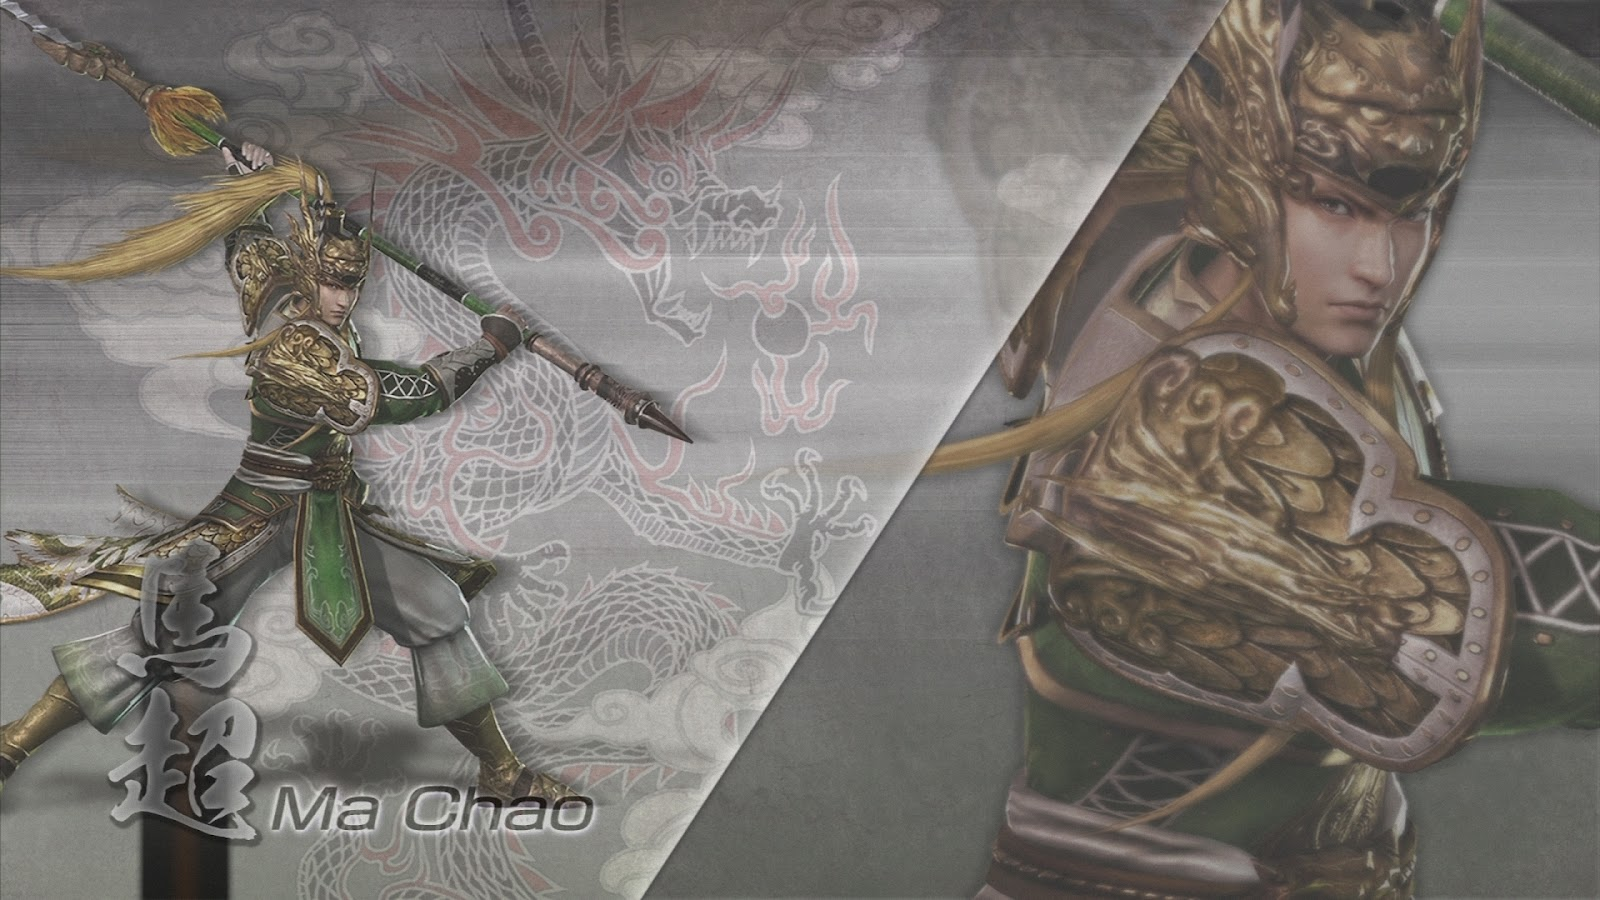 http://3.bp.blogspot.com/-dg6L-knBpCo/UBVVhHmk_xI/AAAAAAAAFDk/AdJNTtdVRxo/s1600/dynasty+warriors+7+wallpapers+9.jpg